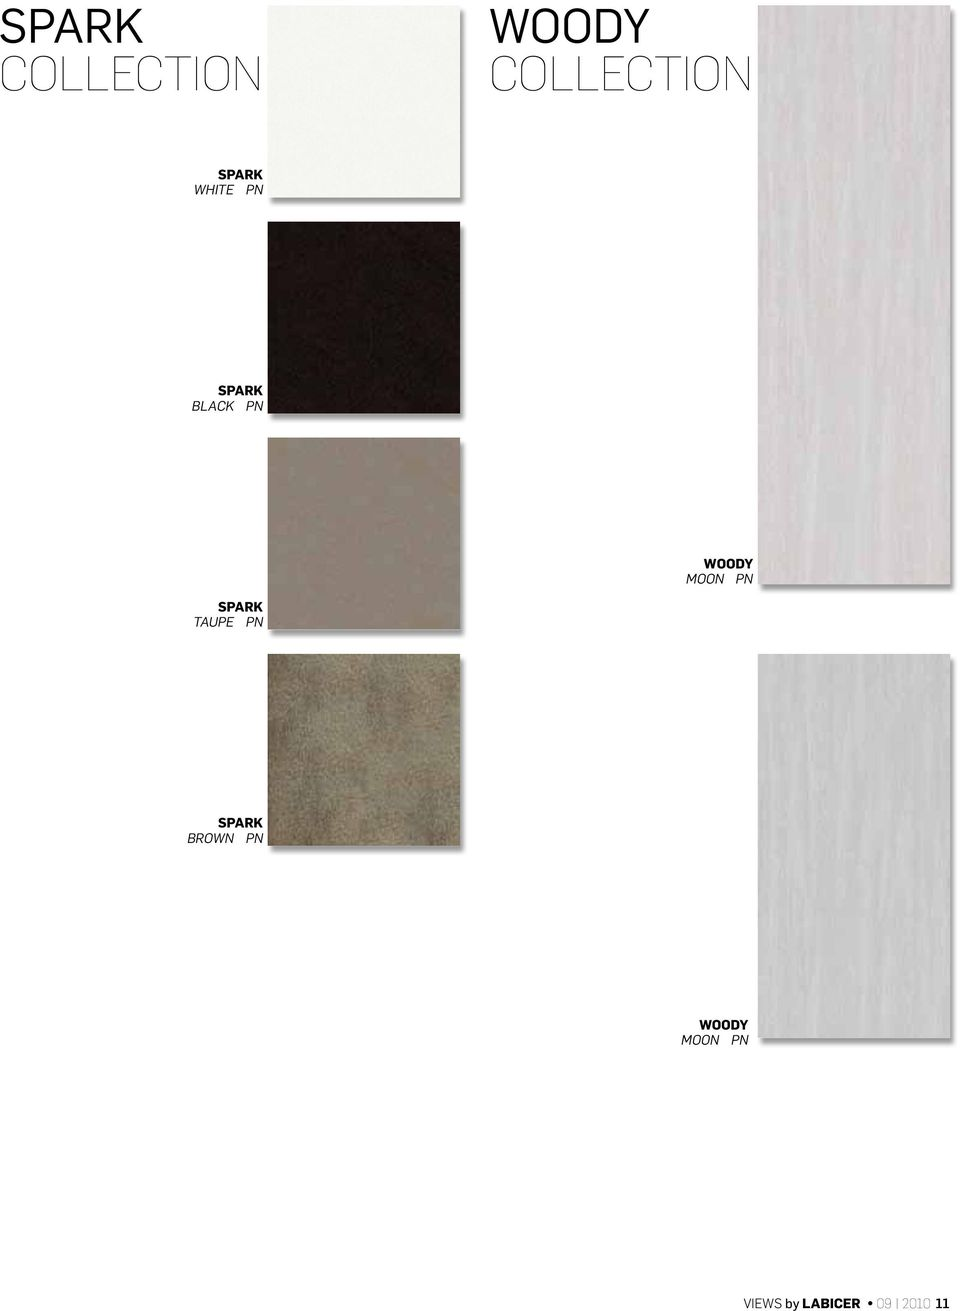 MOON PN SPARK TAUPE PN SPARK BROWN PN